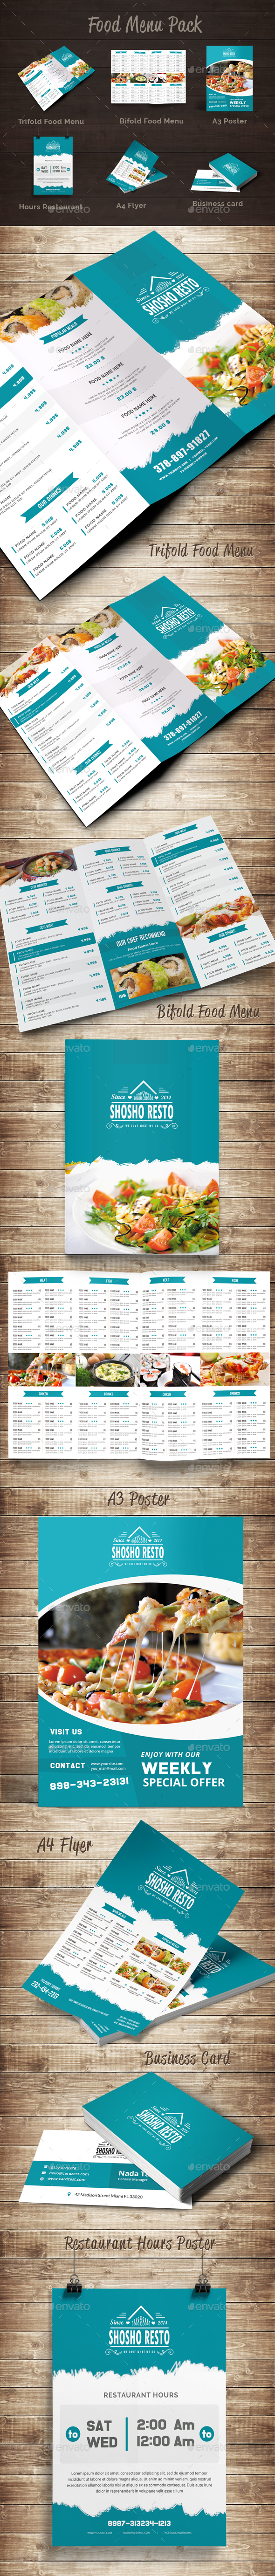 Food Menu Pack 11